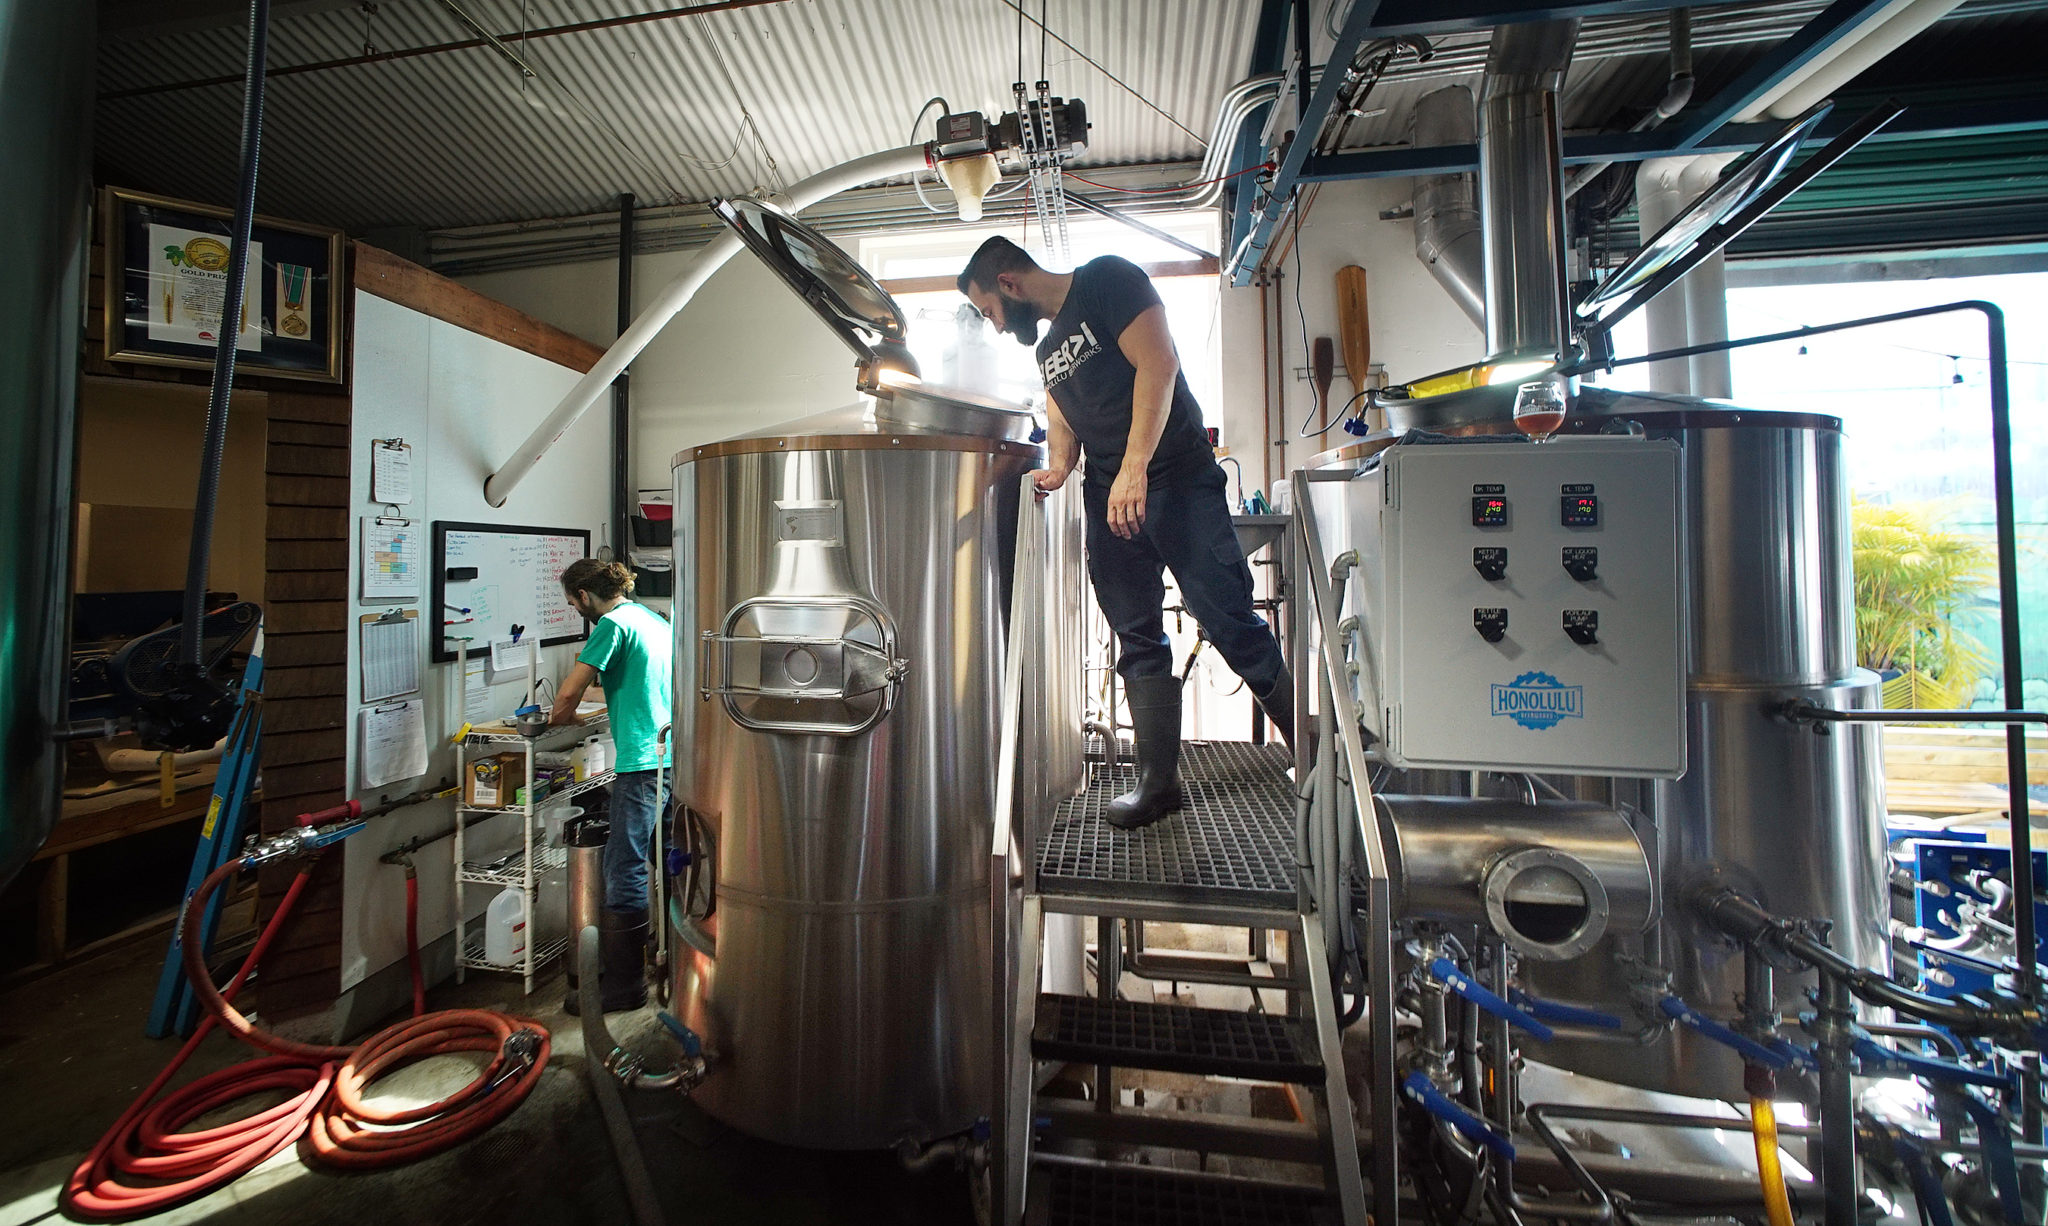 <p>Ken Caldwell keeps an eye on the mash tun vessel. Mashing converts starches from the malt into sugars for fermenting at the brewery, which was opened in 2014 by Geoff Seideman and his wife, Charmayne.</p>